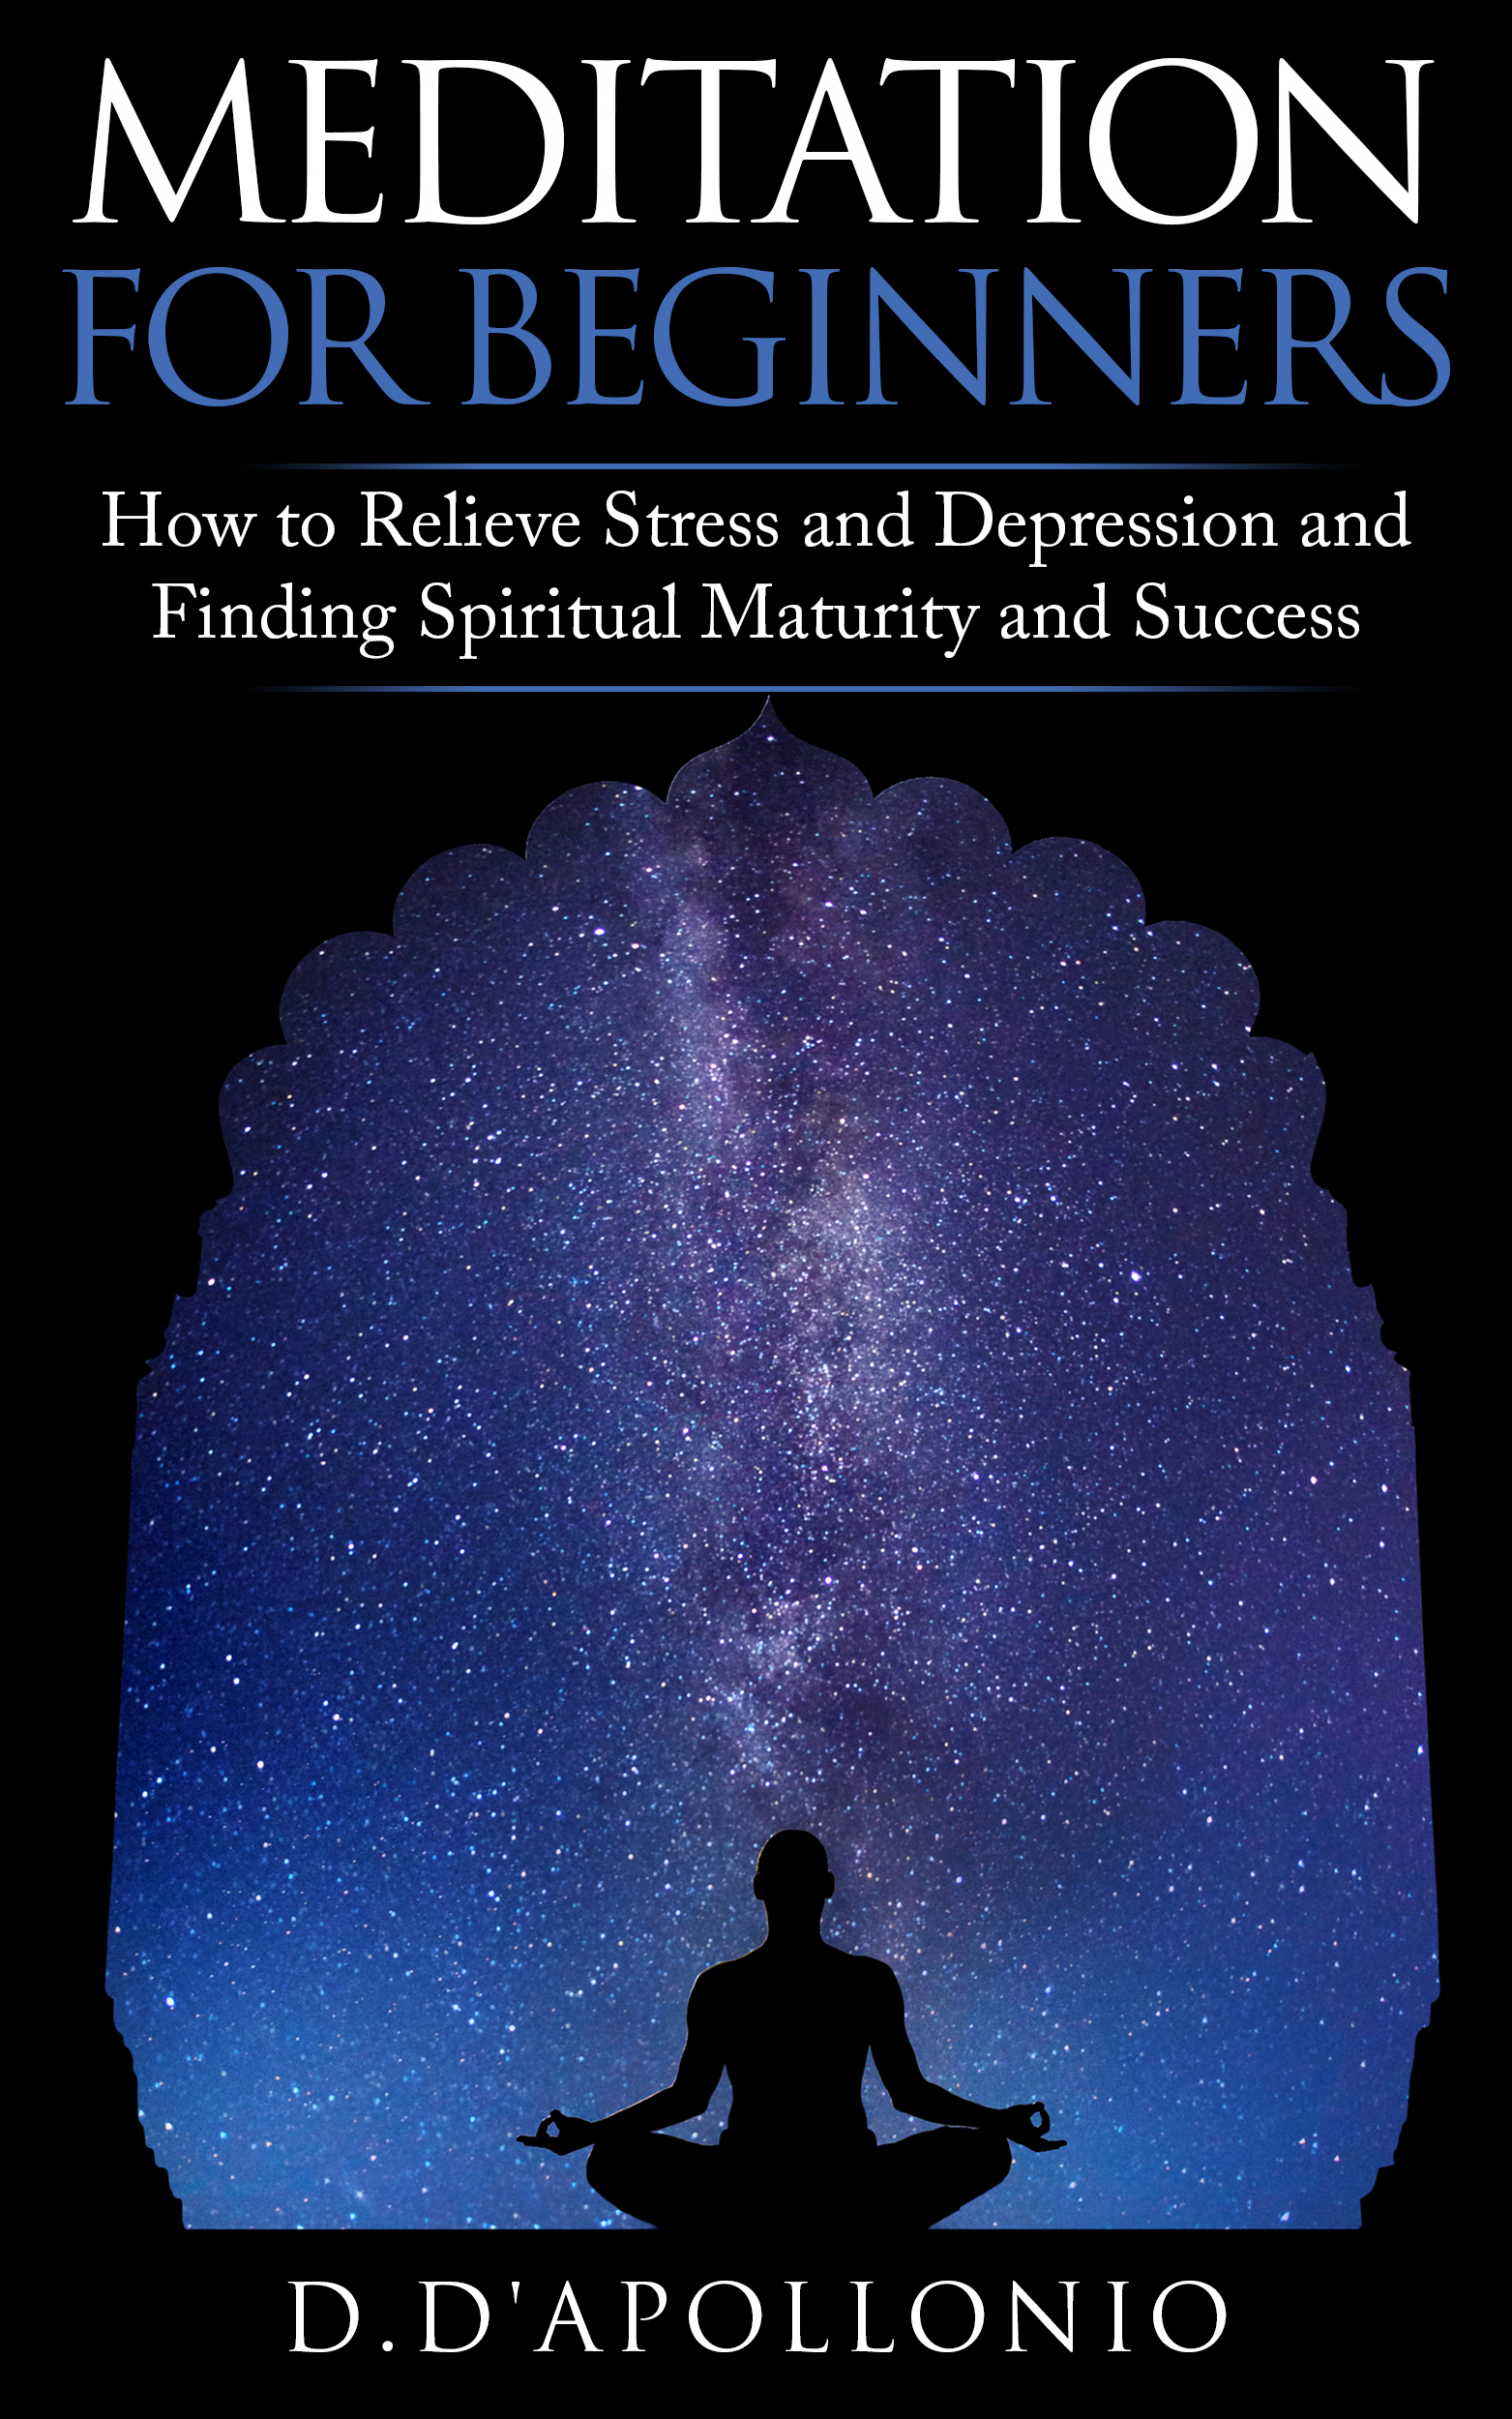 Smashwords Meditation Meditation For Beginners How To Relieve Stress And Depression And Finding Spiritual Maturity And Success A Book By D D Apollonio